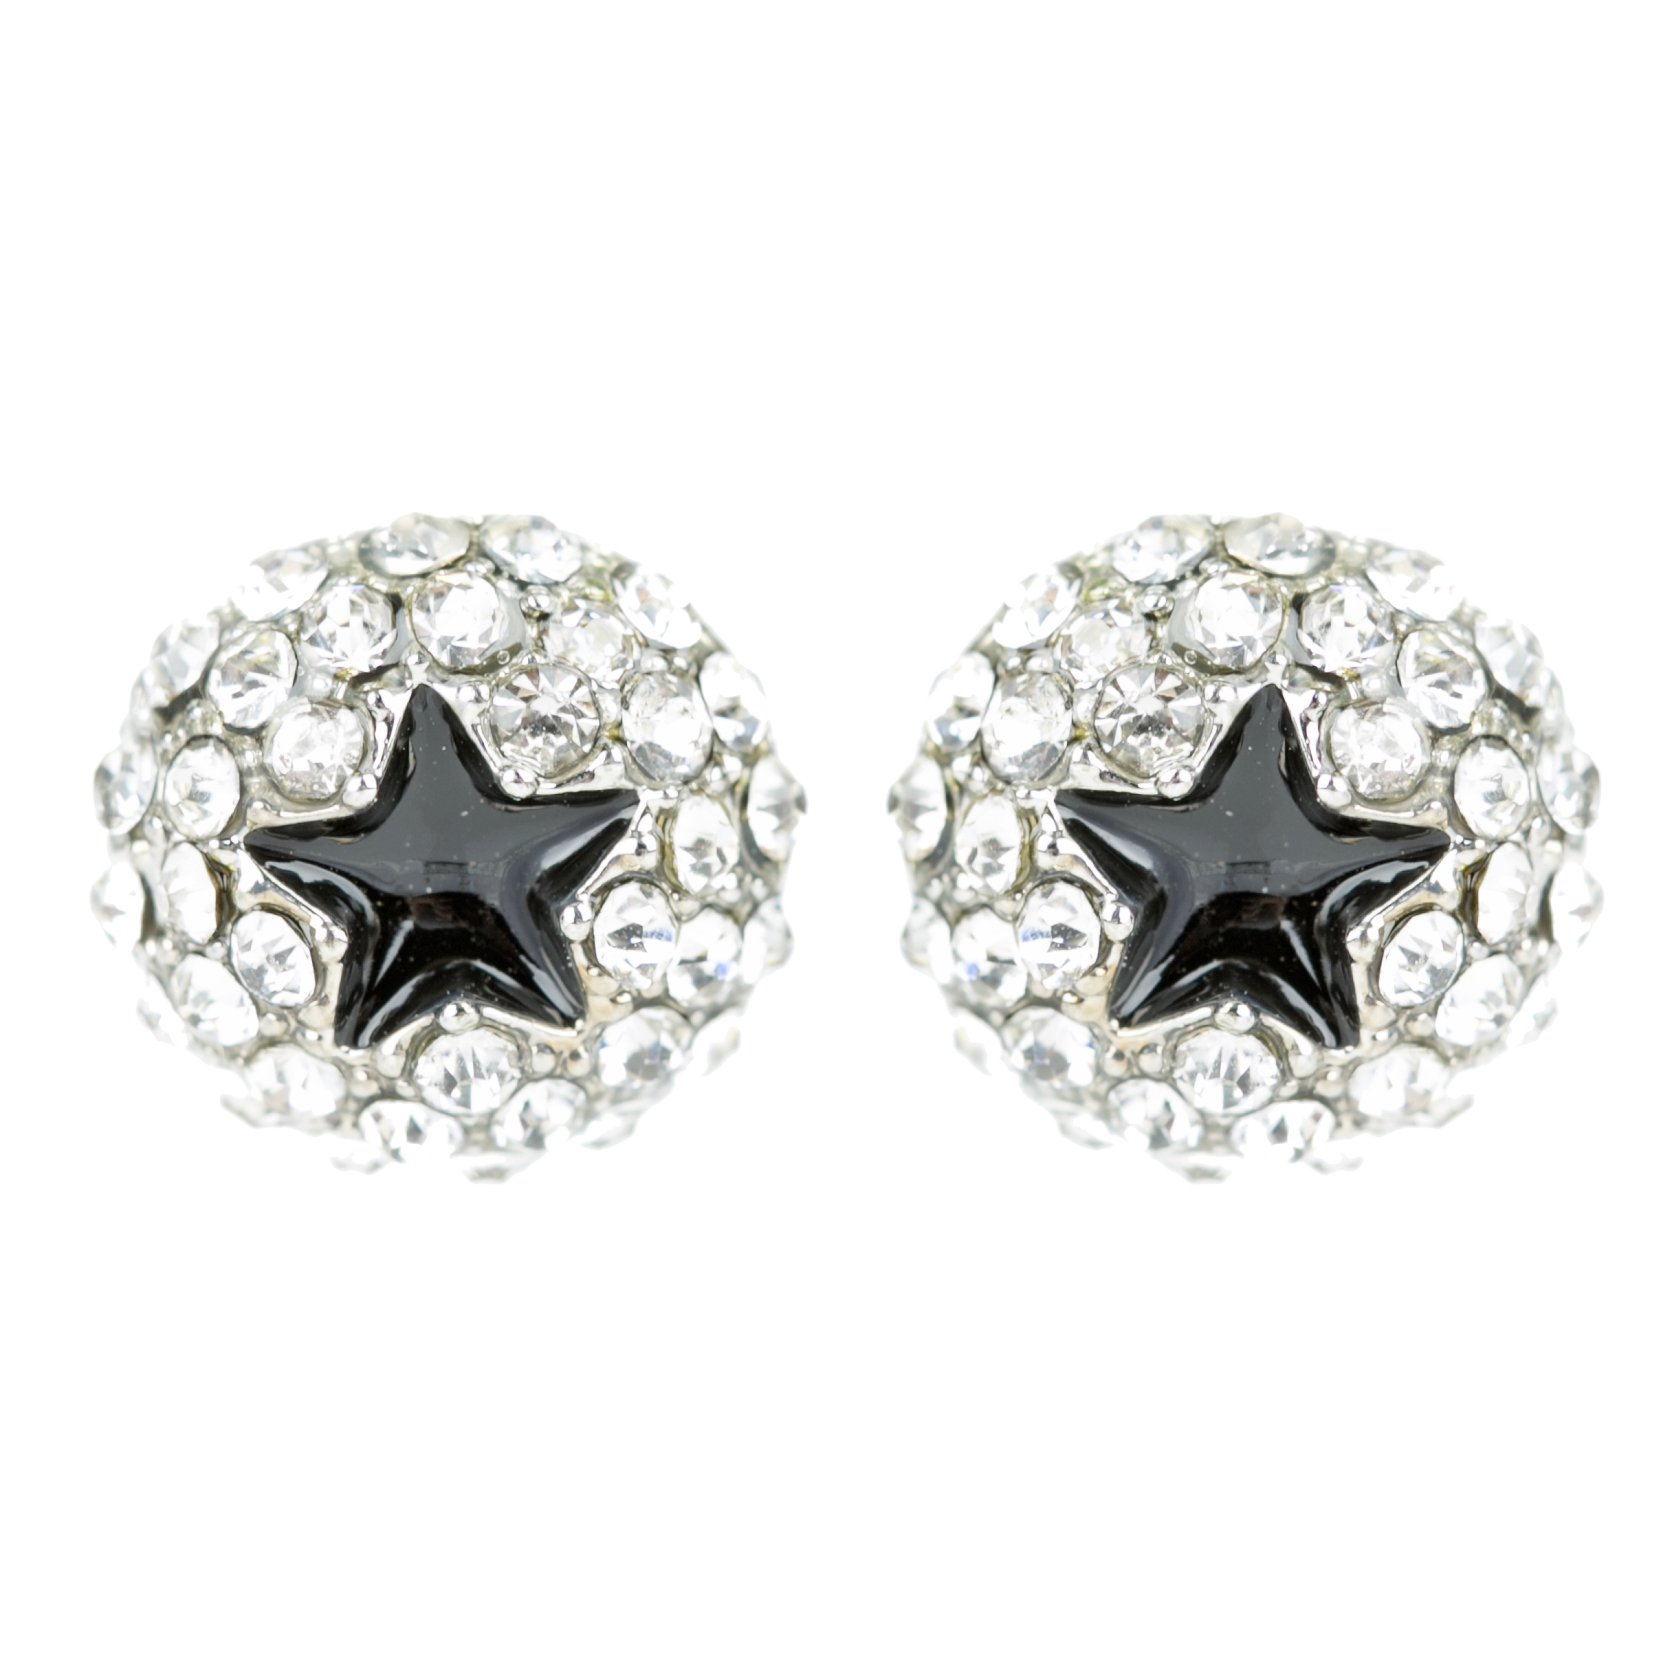 ACCESSORIESFOREVER Dazzling Crystal Rhinestone Star Round Fashion Stud Post Earrings E1194 Silver